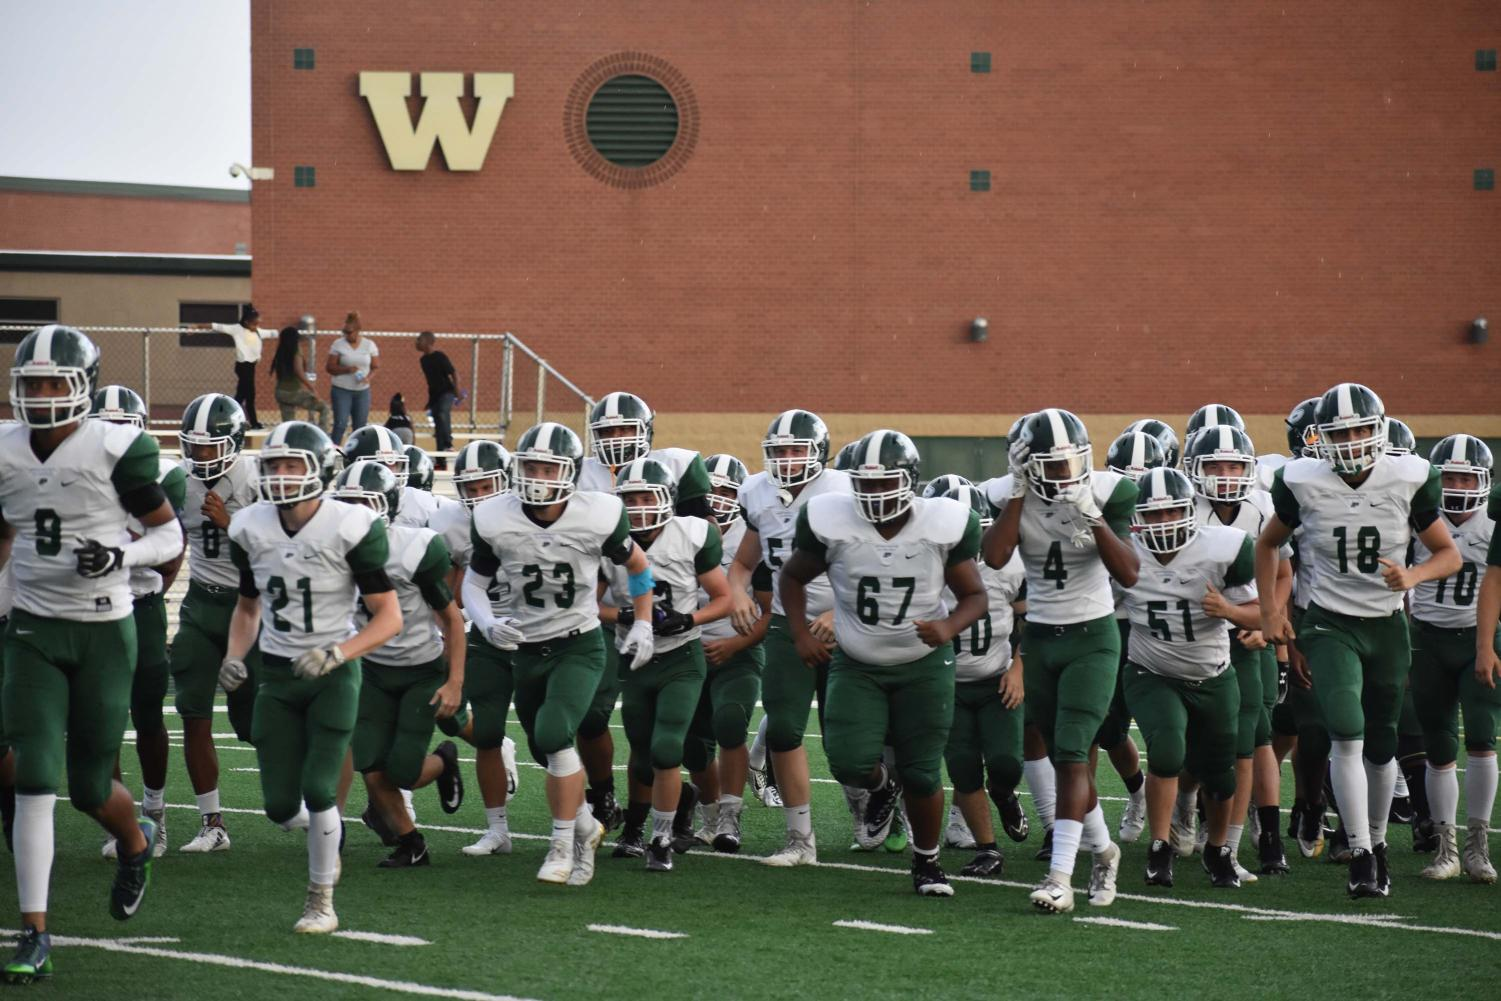 The+varsity+football+team+takes+the+field+fresh+off+summer+training.+The+team+broke+their+four-year+losing+streak+last+year+in+a+close+game+with+Plainfield+East.